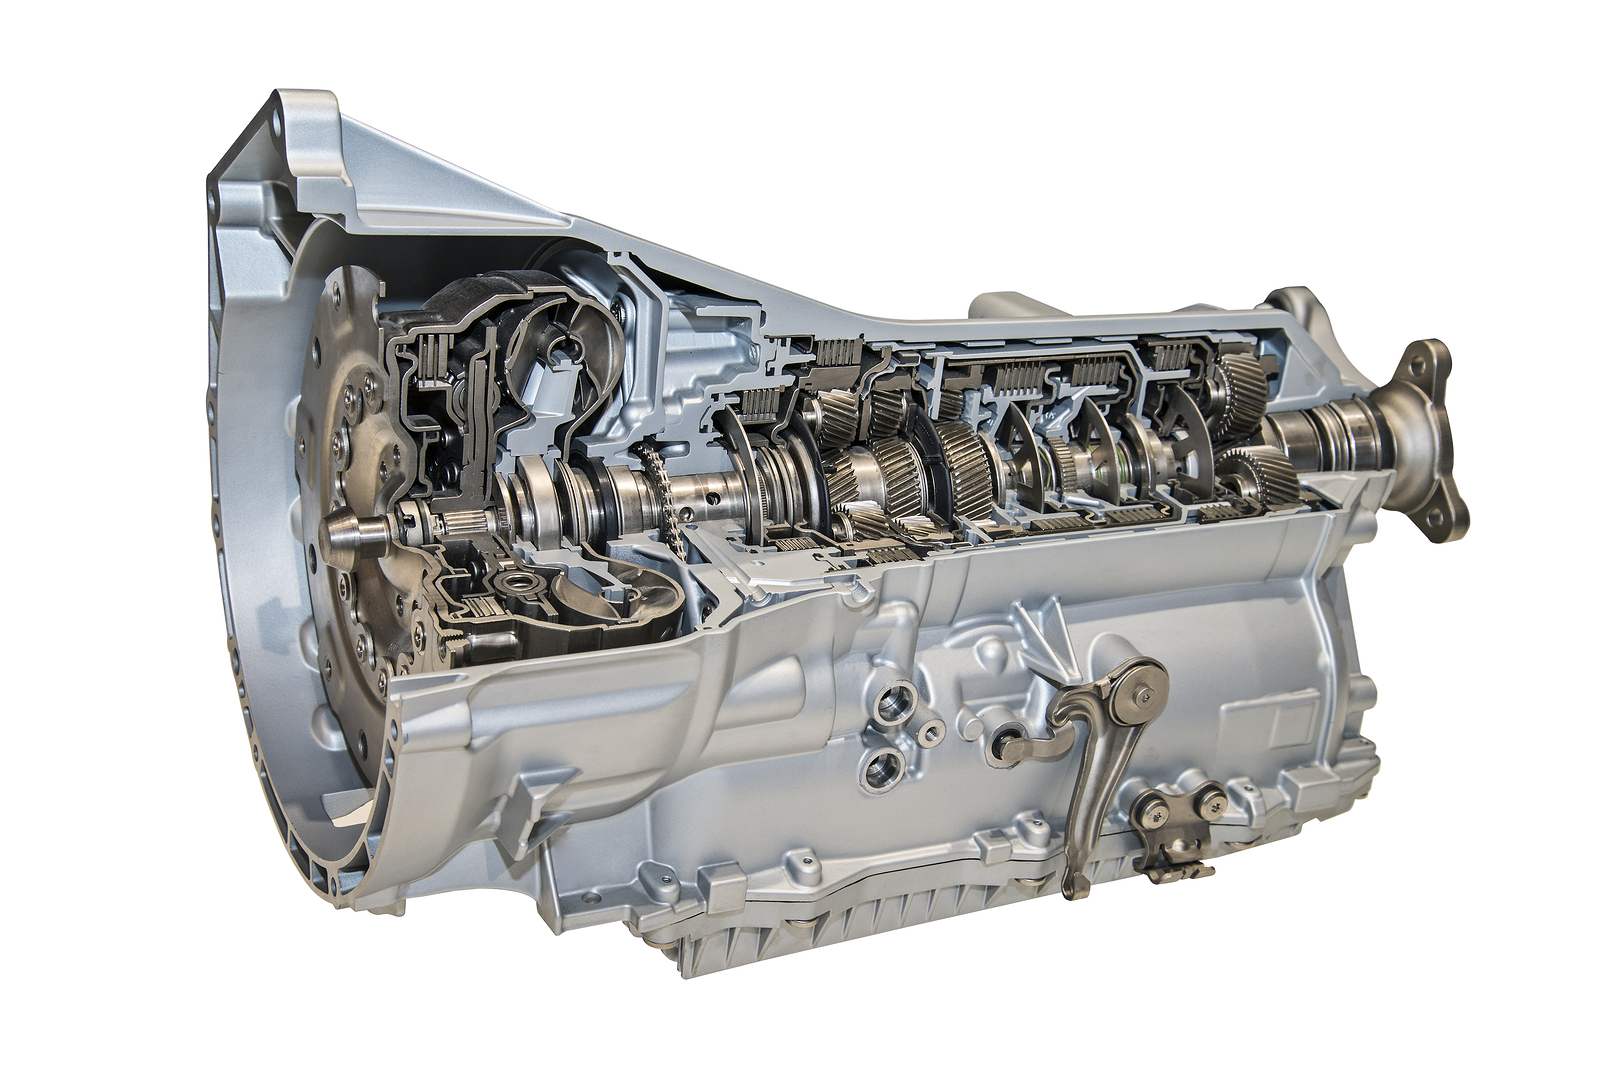 bigstock-Modern-Transmission-For-Cars-83787356.jpg